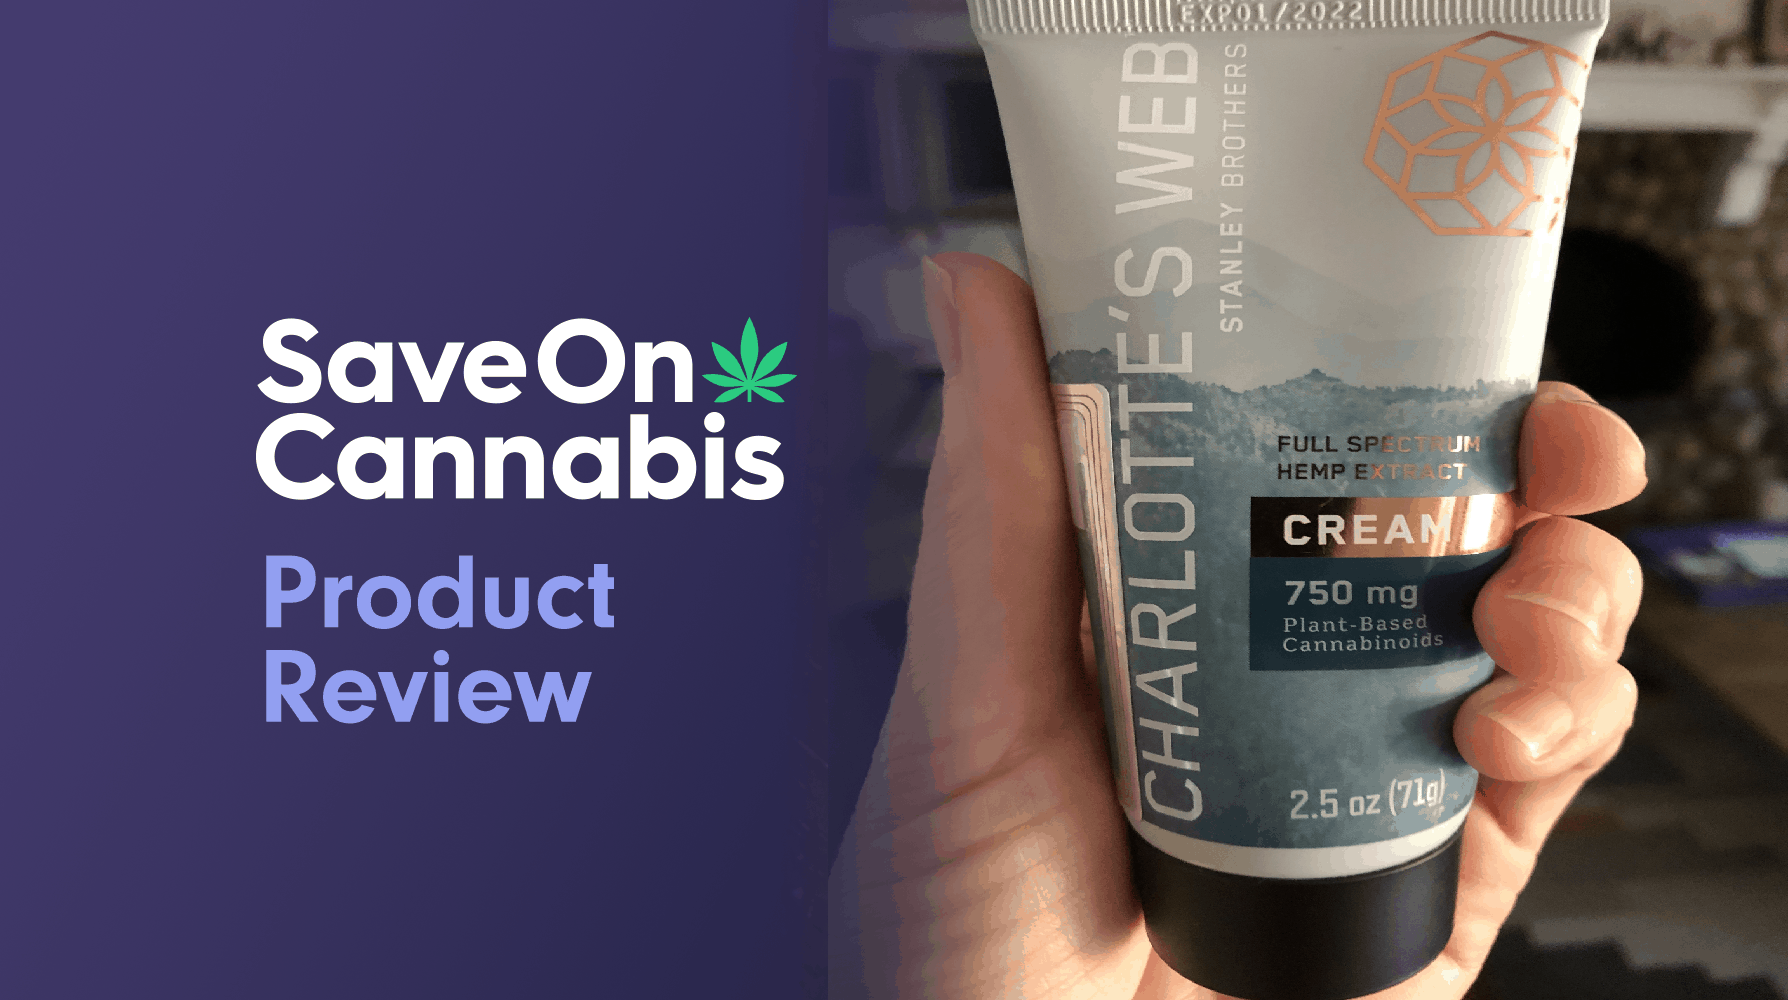 charlotte's web cream save on cannabis review website